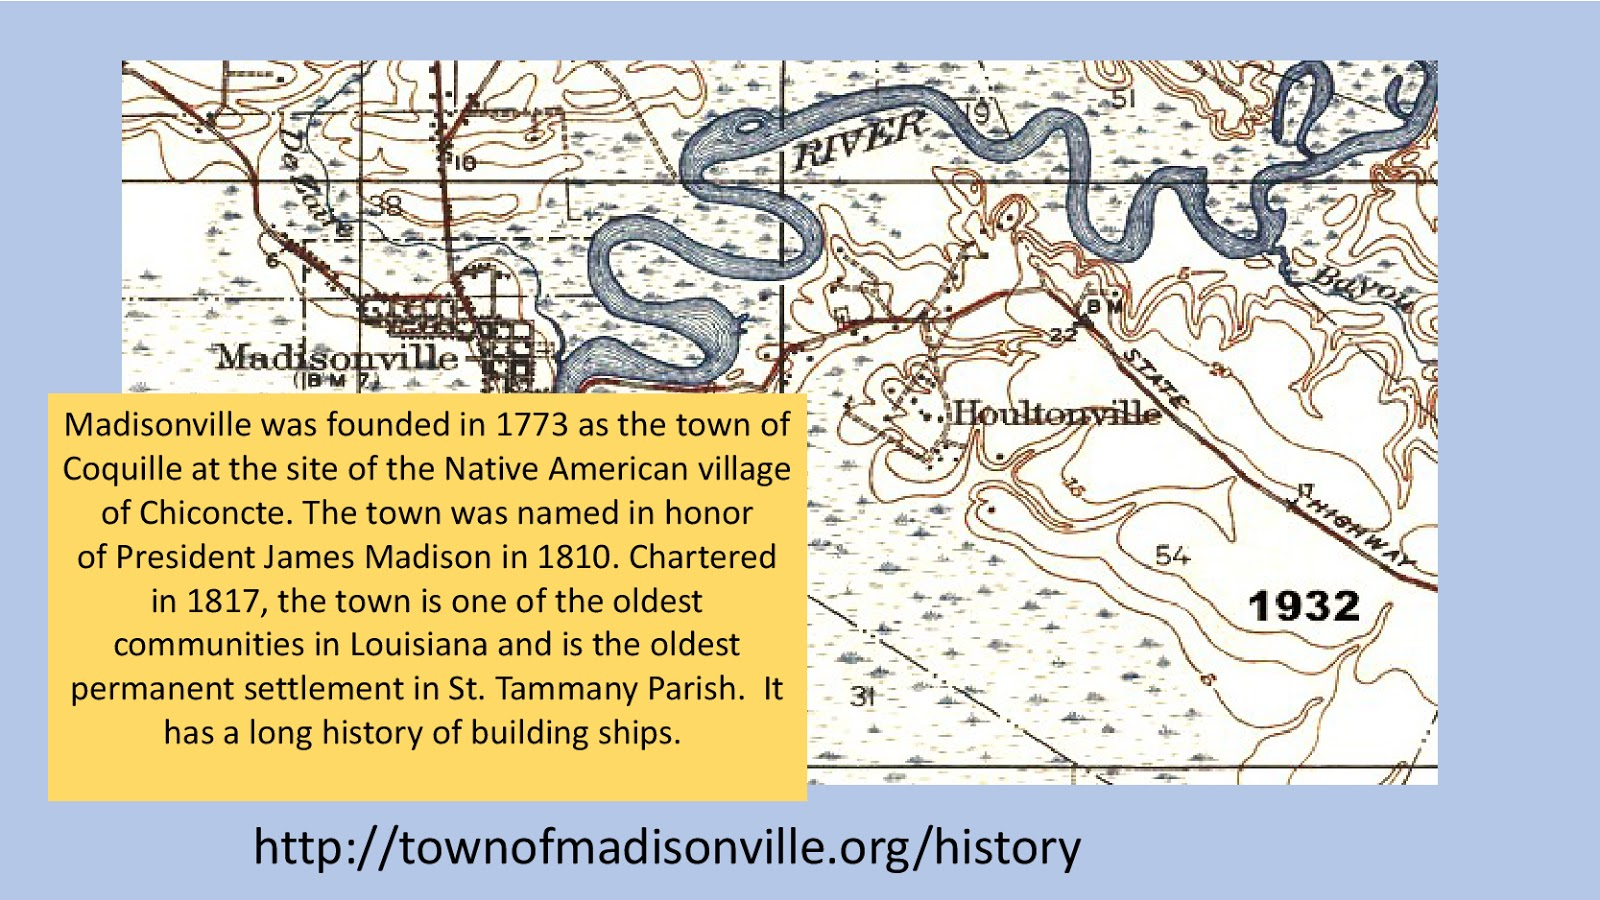 this map shows the tchefuncte river flowing past madisonville the oldest permanent settlement in st tammanny parish and one of the oldest communities in